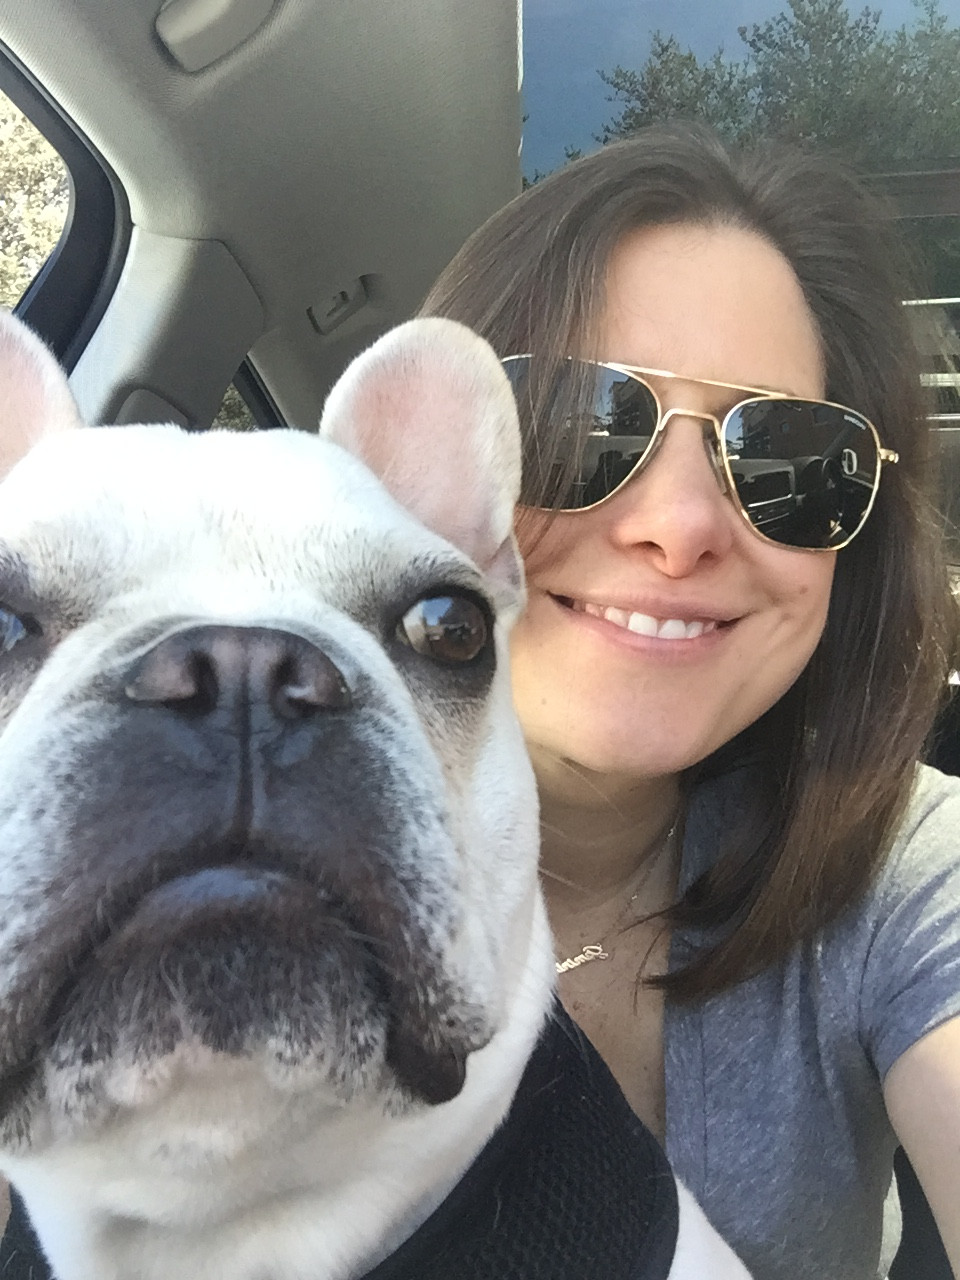 Pudge and Kristen in the car